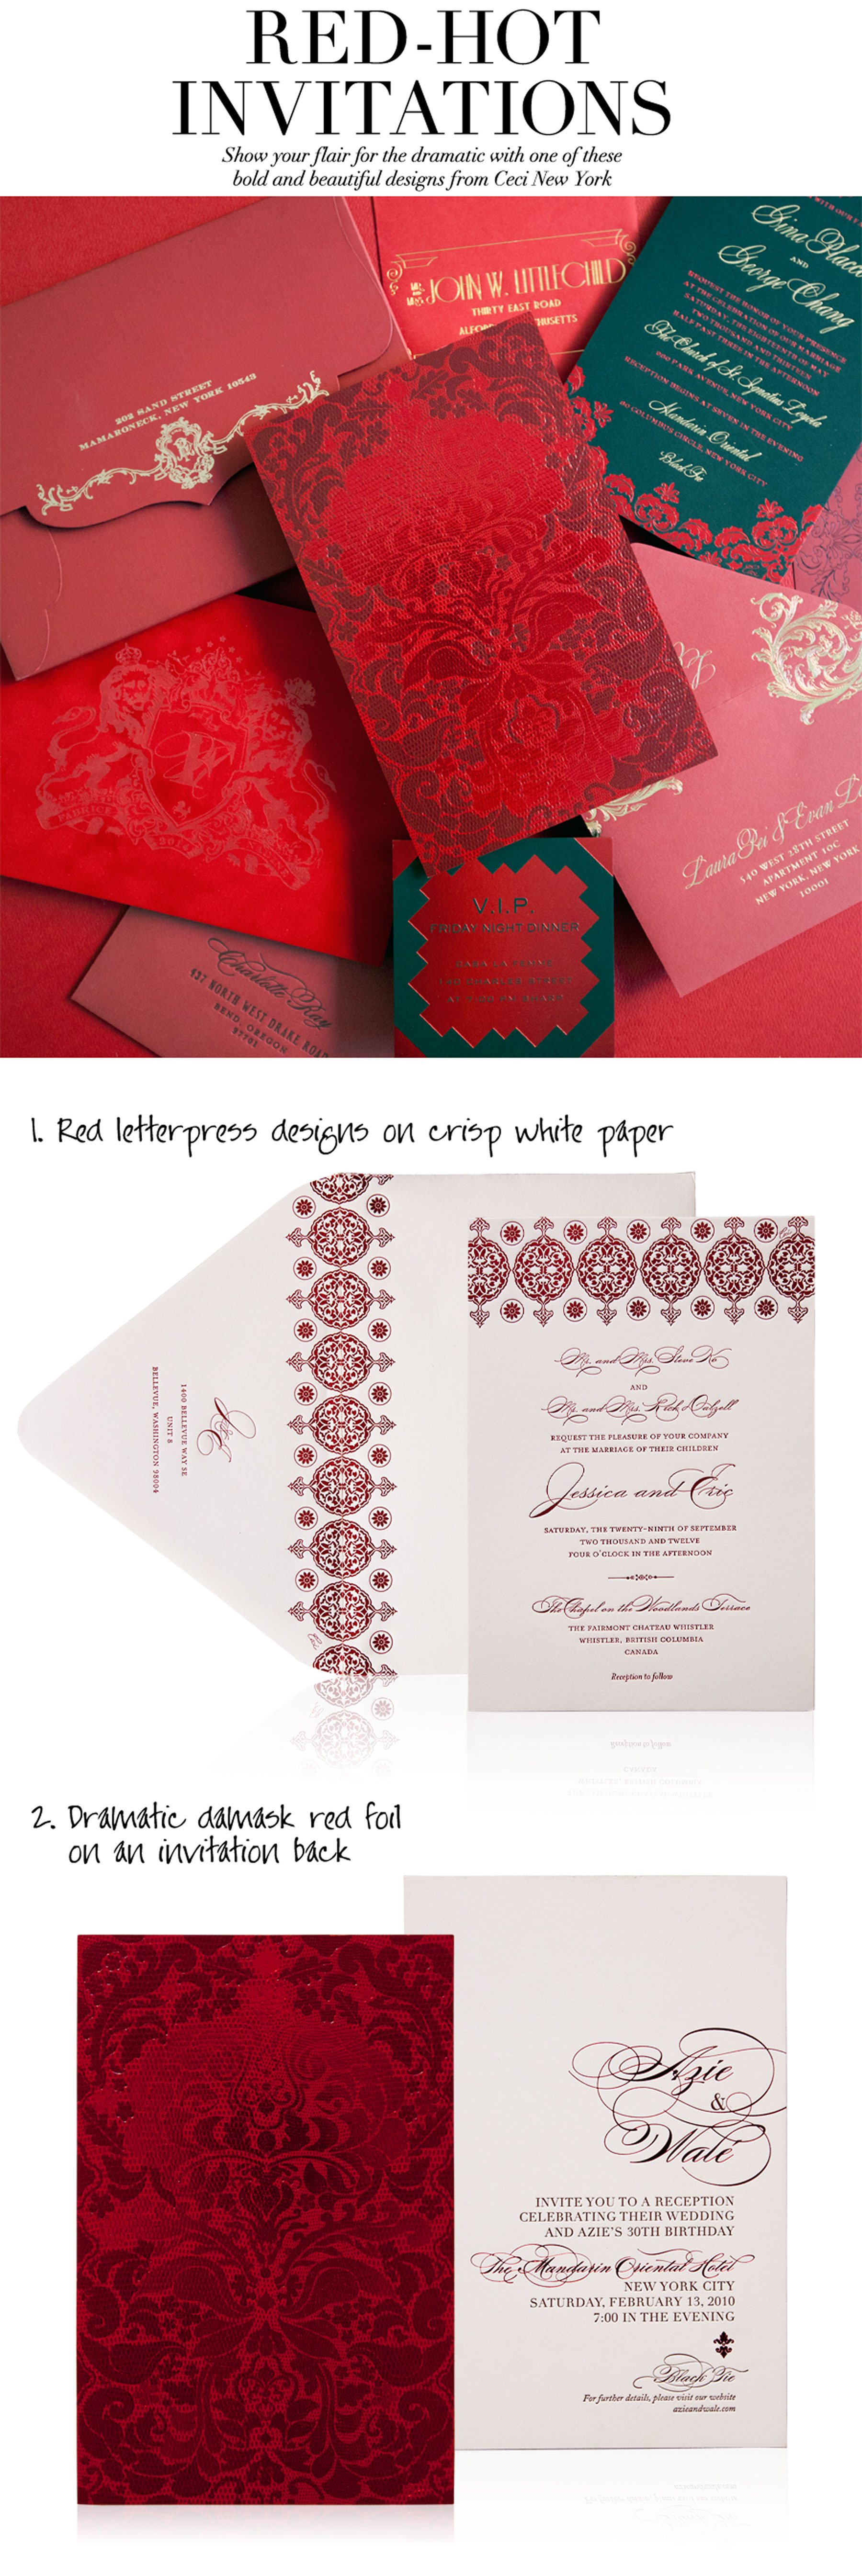 RED-HOT INVITATIONS - Show your flair for the dramatic with one of ...